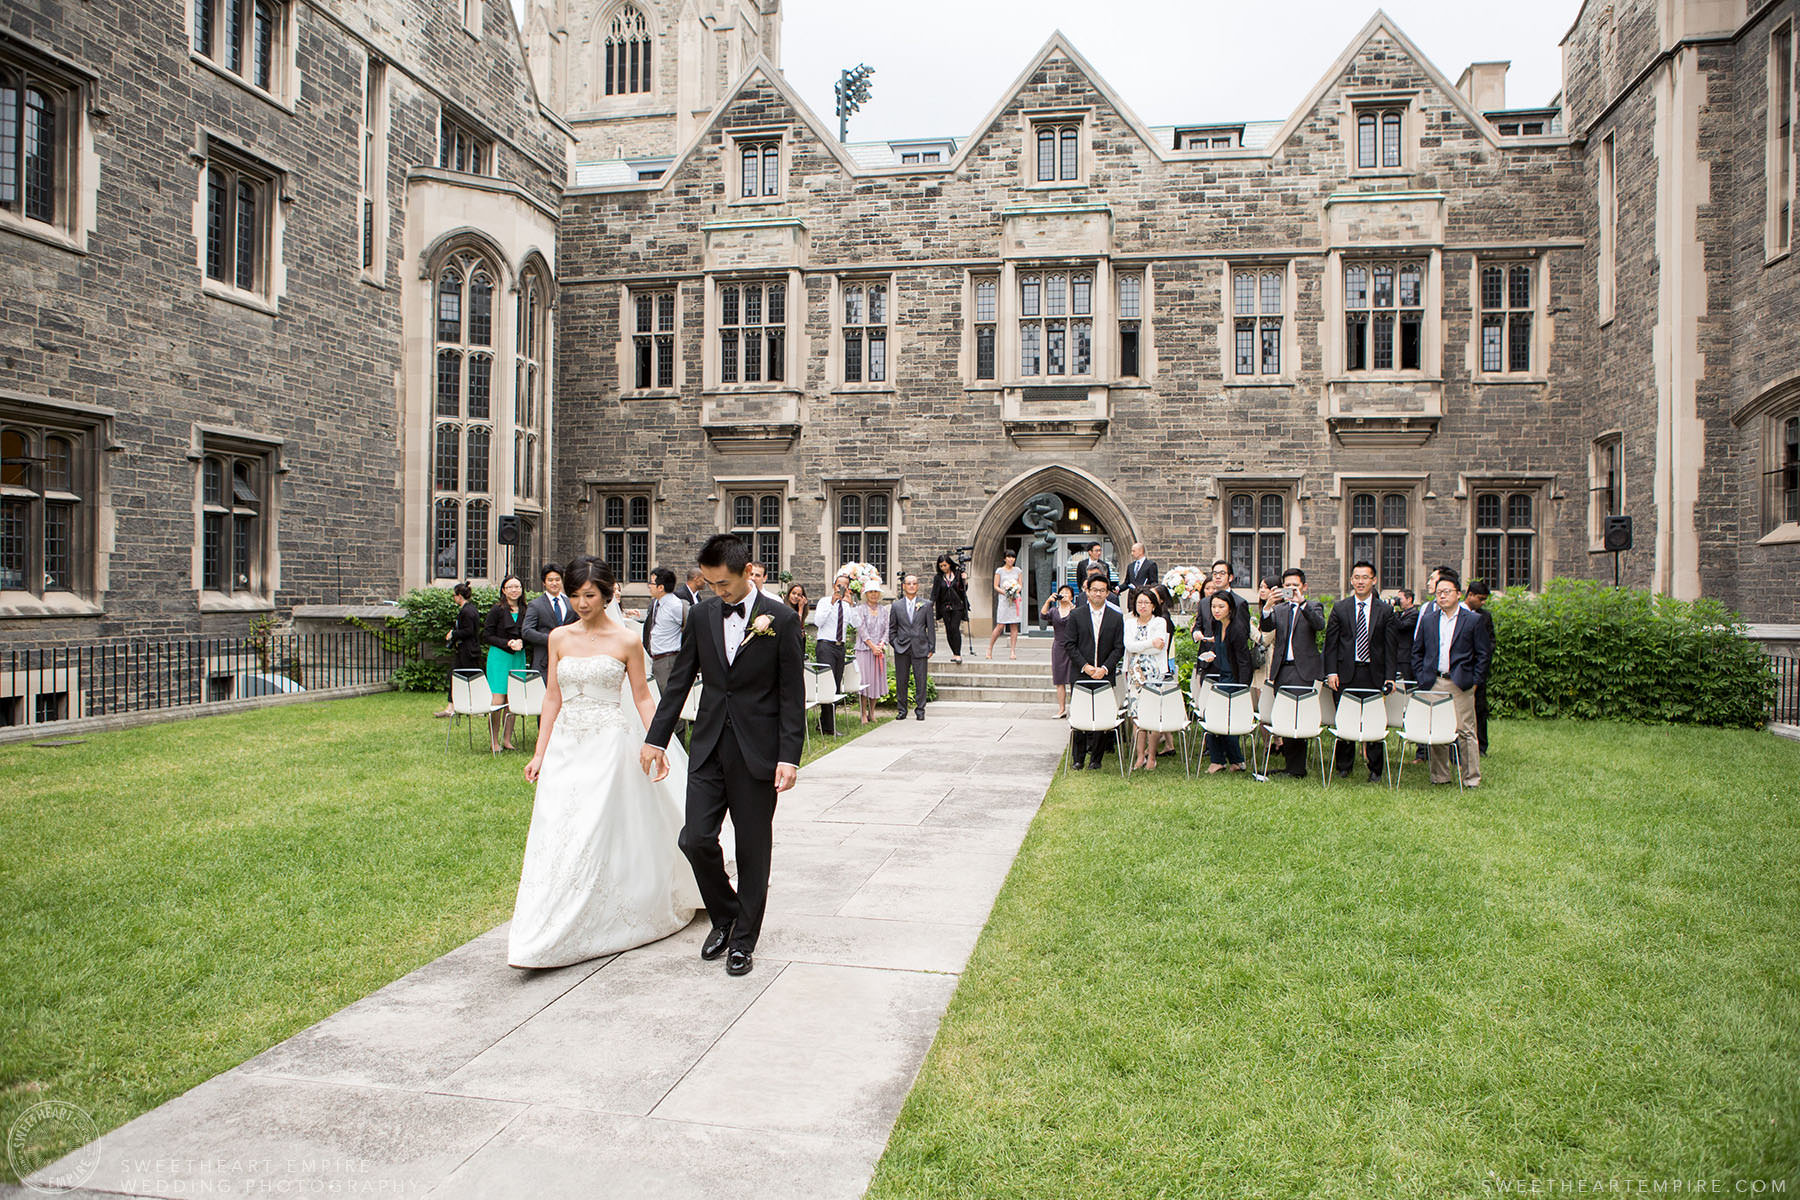 Bride and groom walking down the aisle after being married, Hart House University of Toronto Wedding